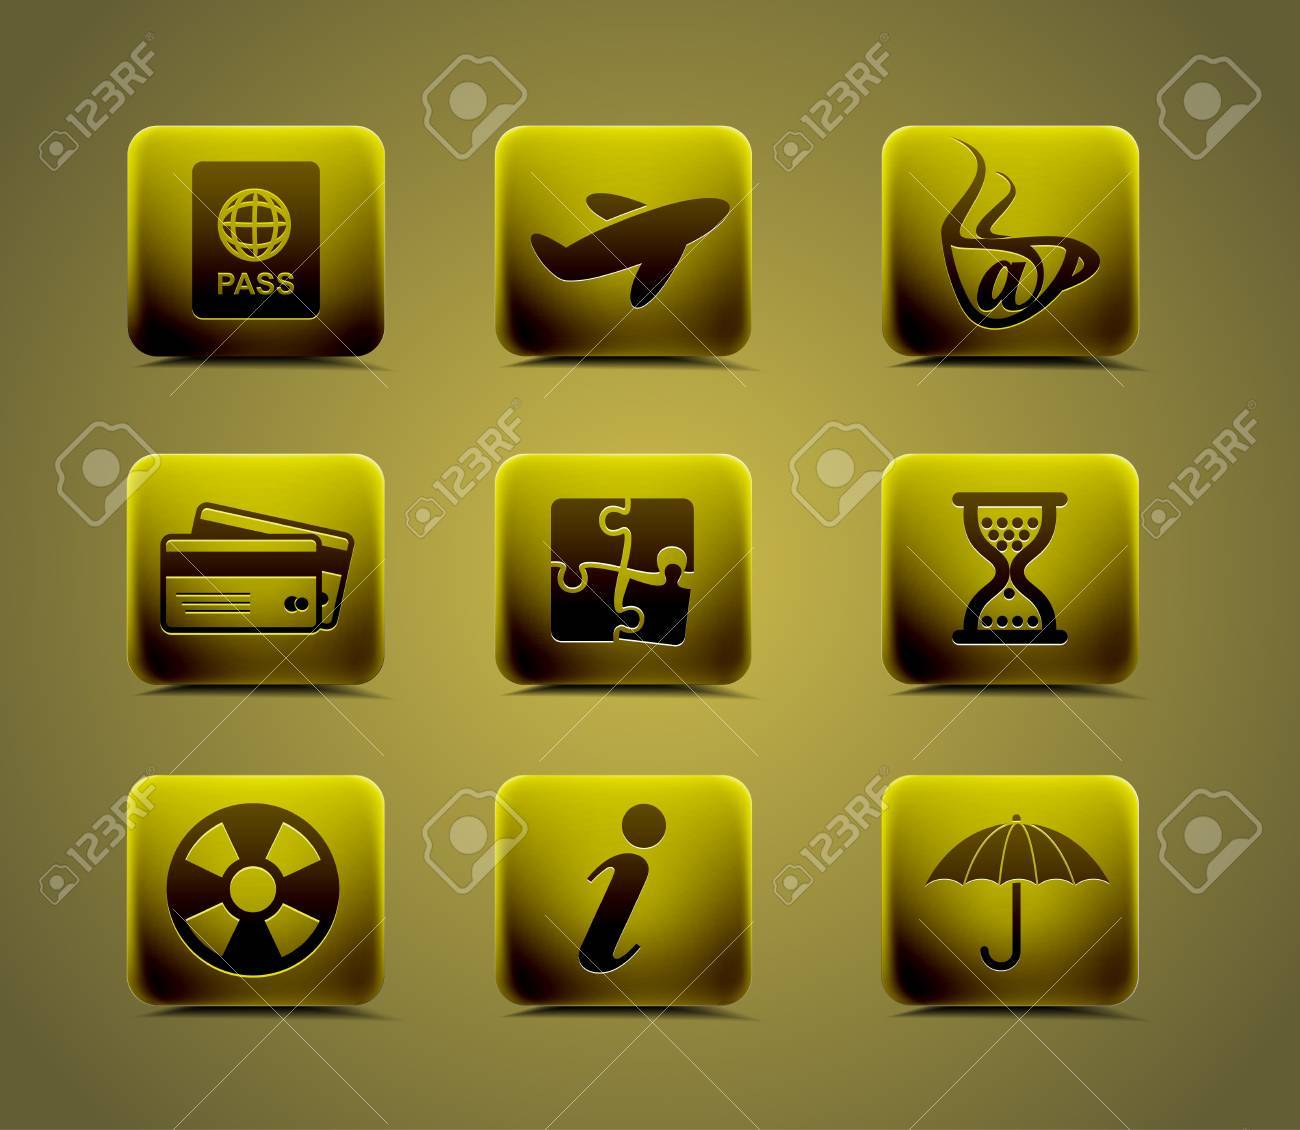 Travel icon set. easy to edit vector image. Stock Vector - 9066148